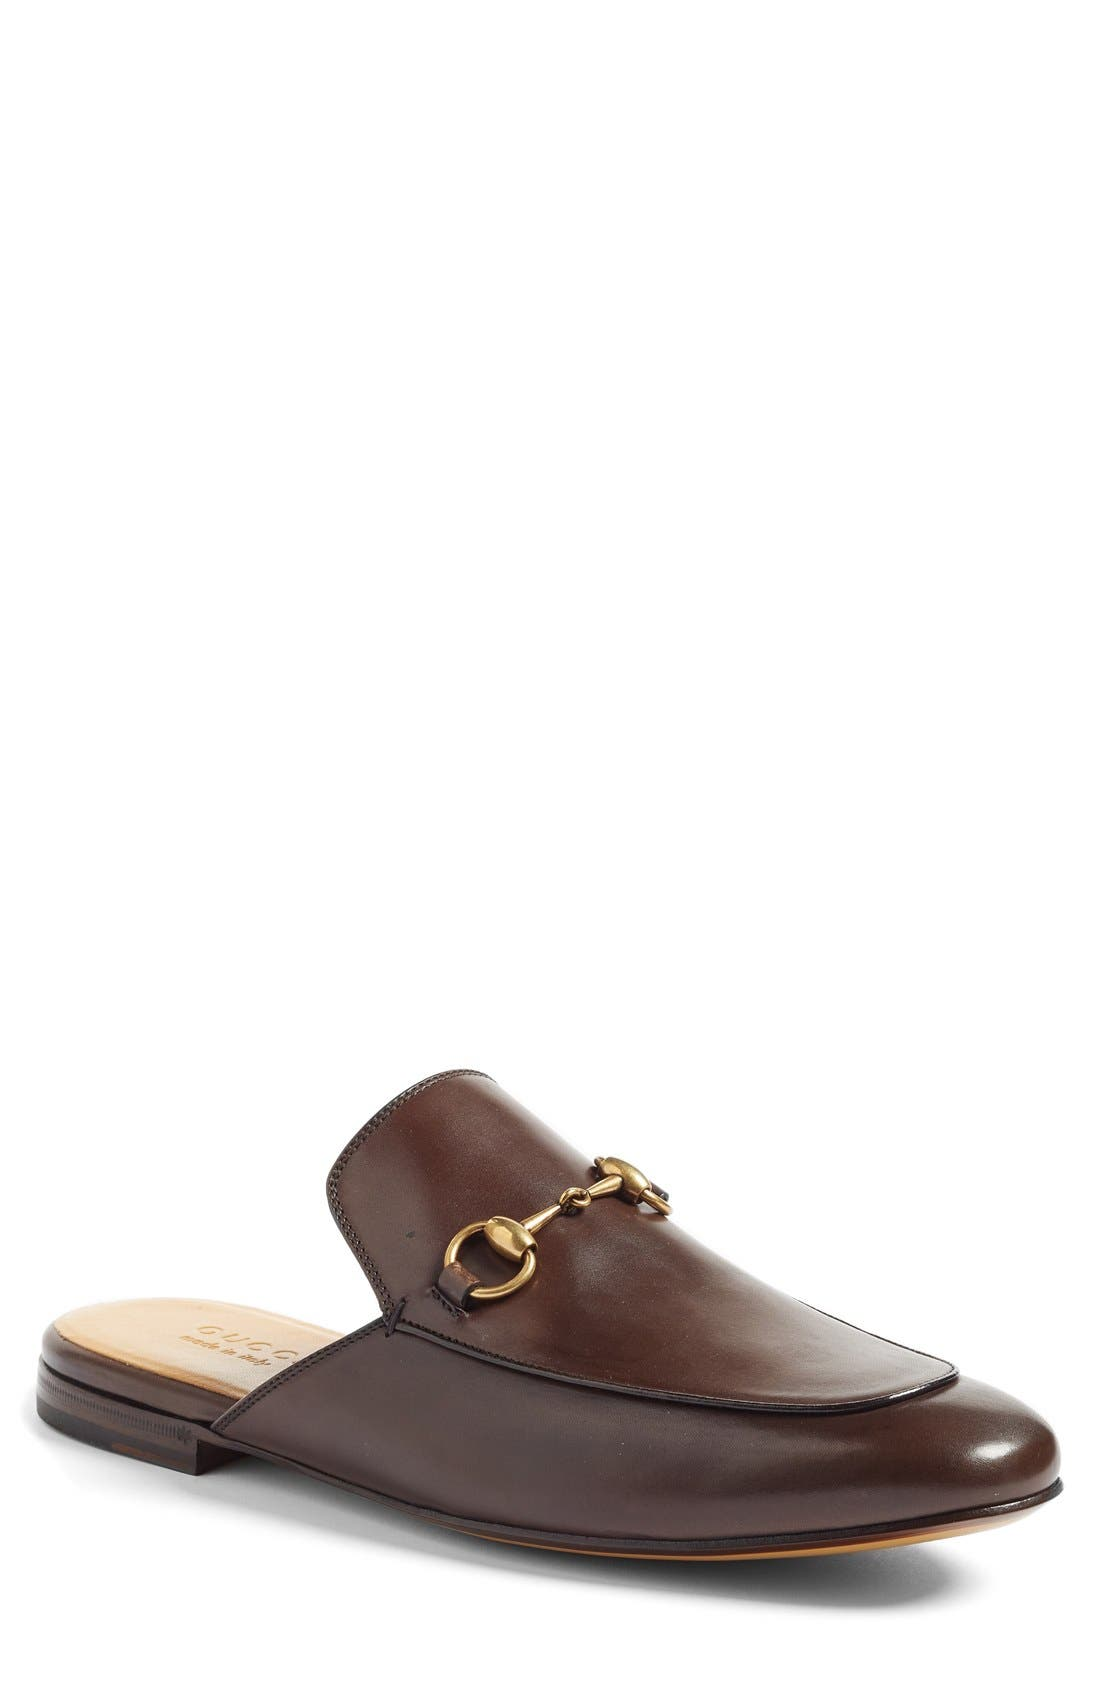 Straw Kings Slipper,                         Main,                         color, BROWN LEATHER